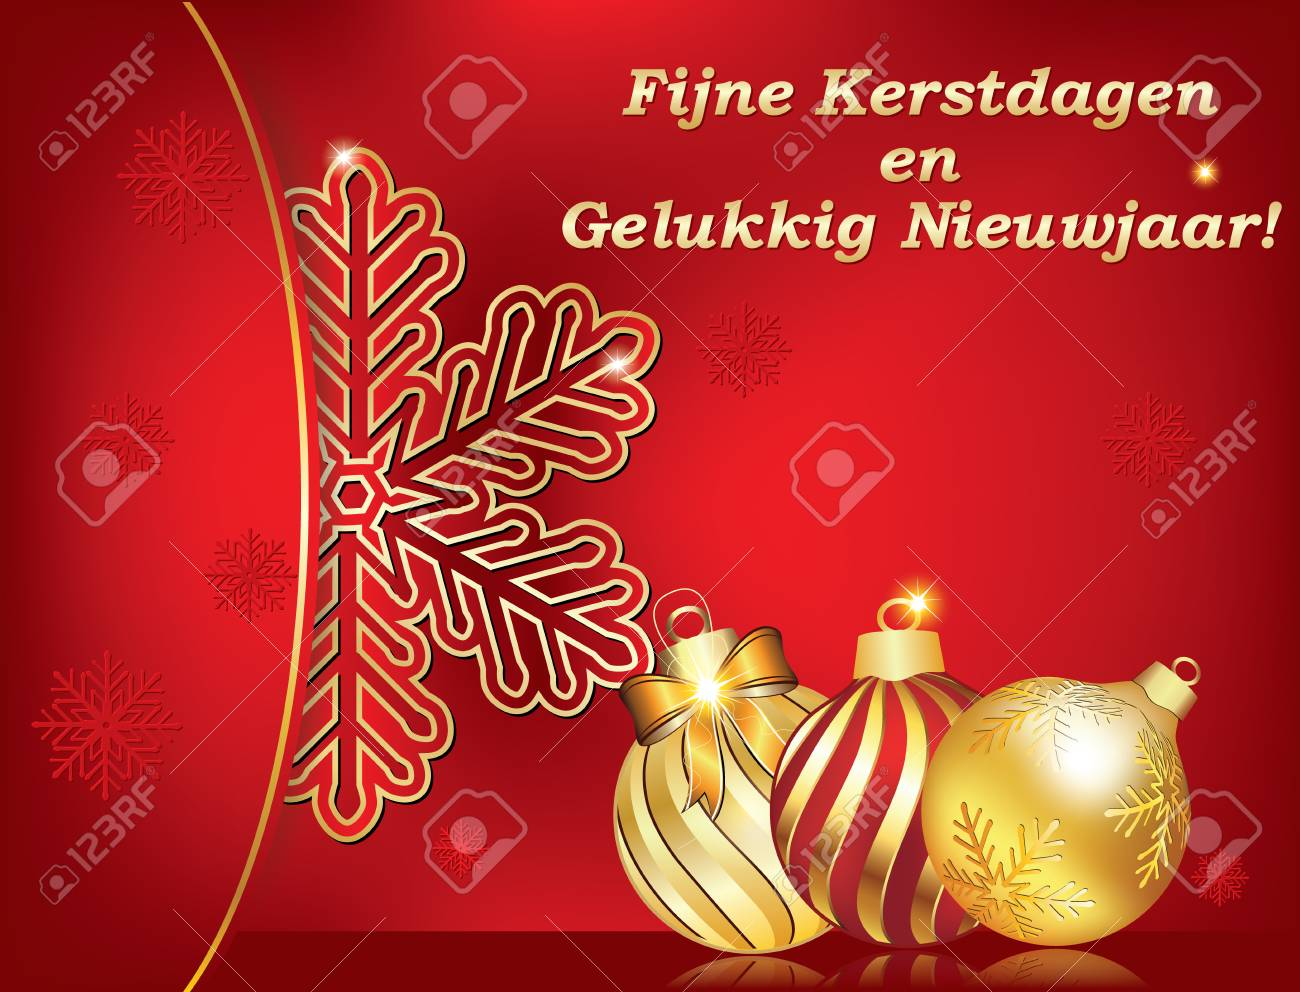 dutch new year greeting card merry christmas and happy new year fijne kerstdagen en